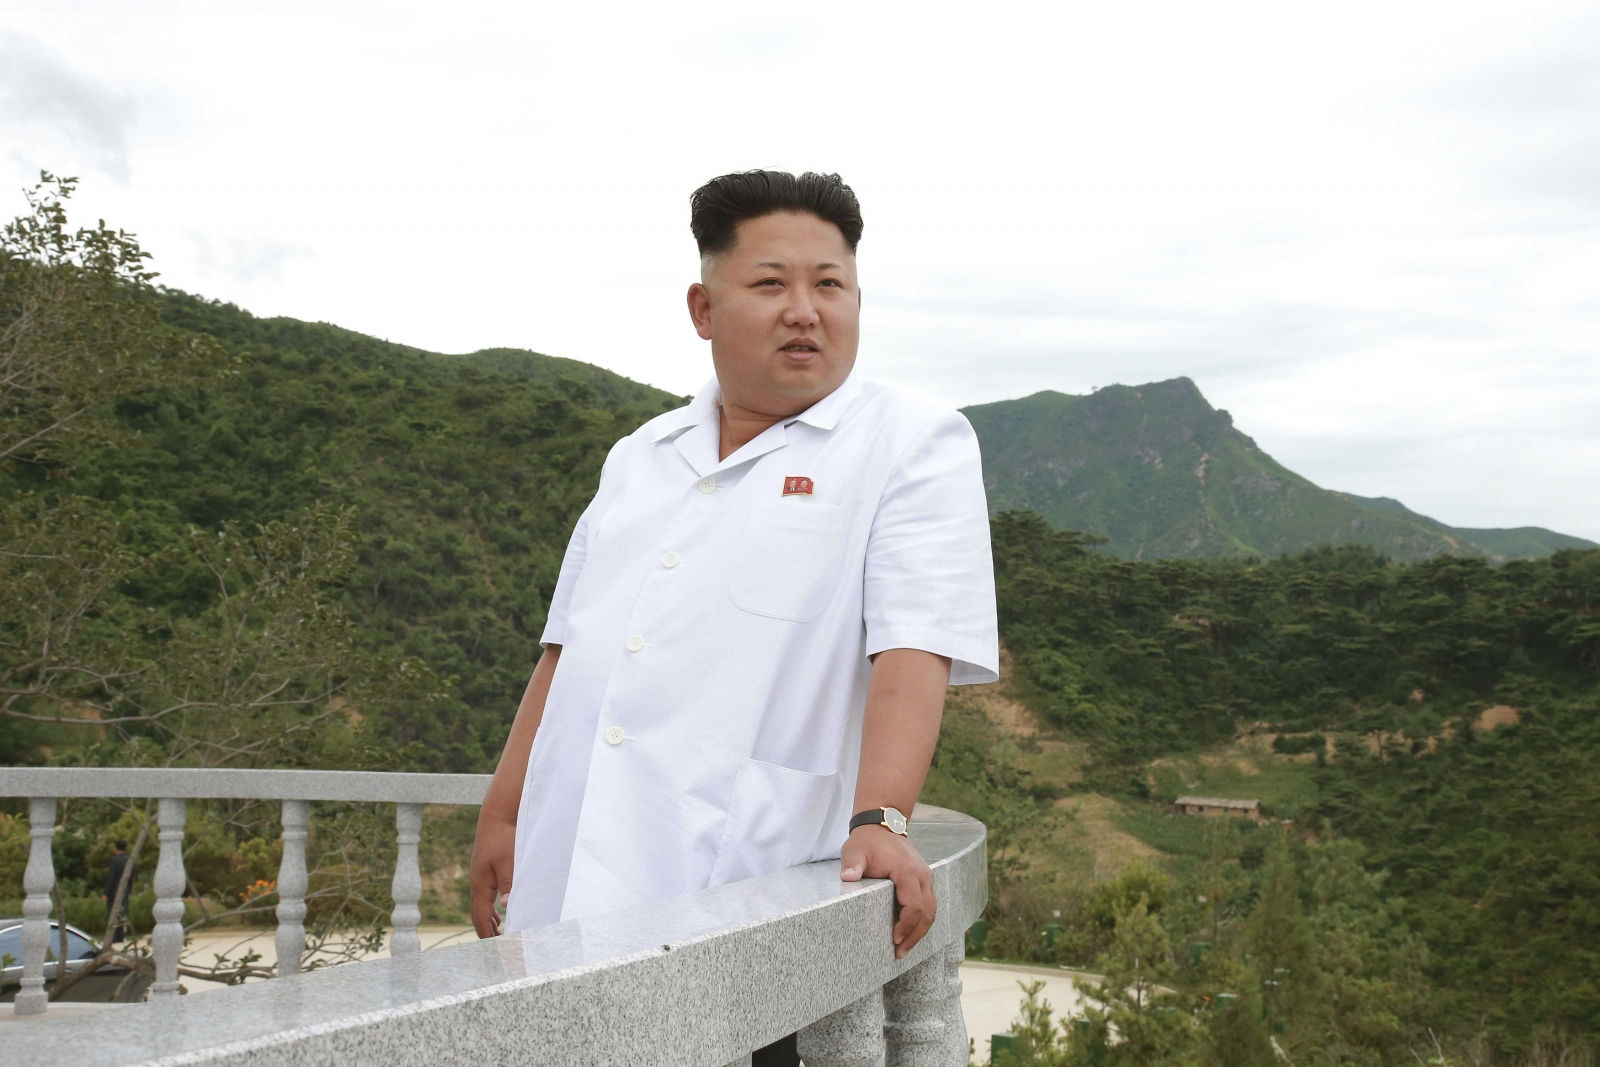 North Korean leader Kim Jong-un foreign trip